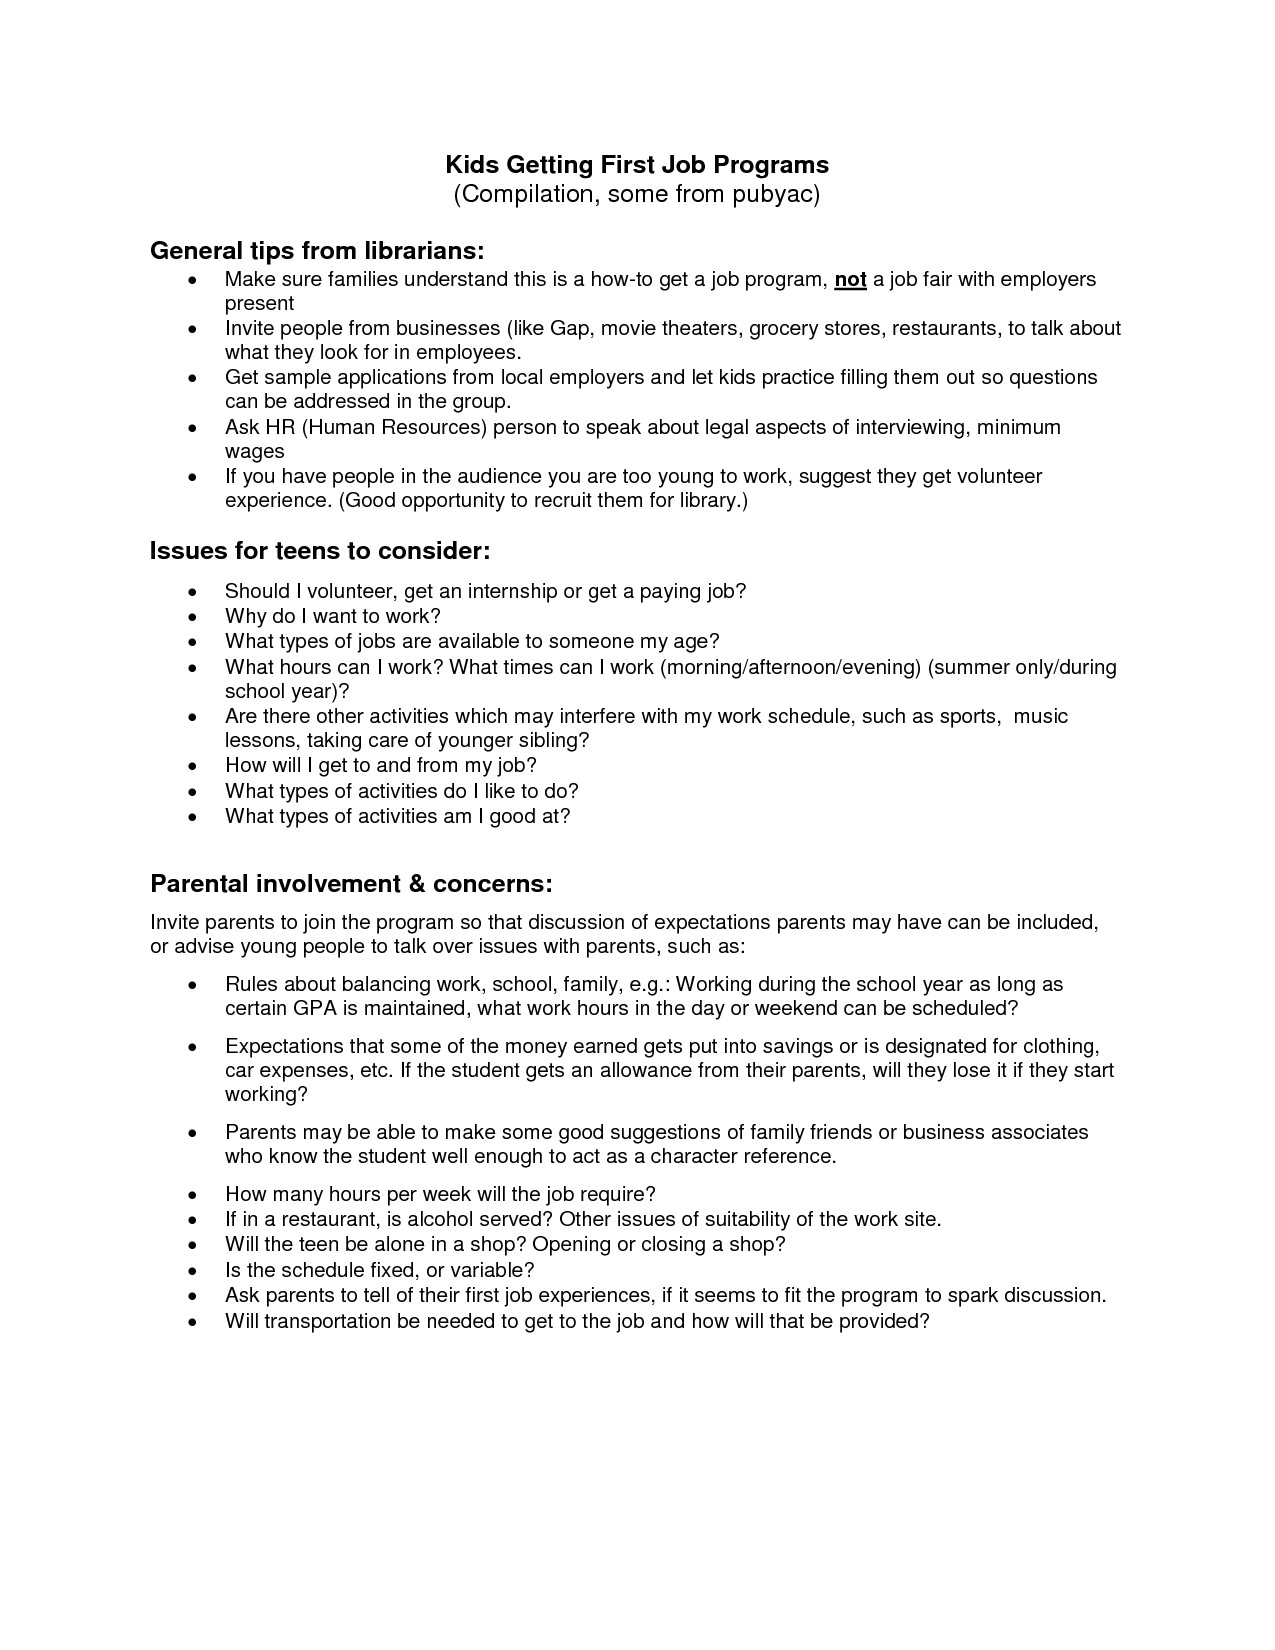 Resume Samples for Teenage Jobs First Job Resume Template Health Symptoms and Cure Com